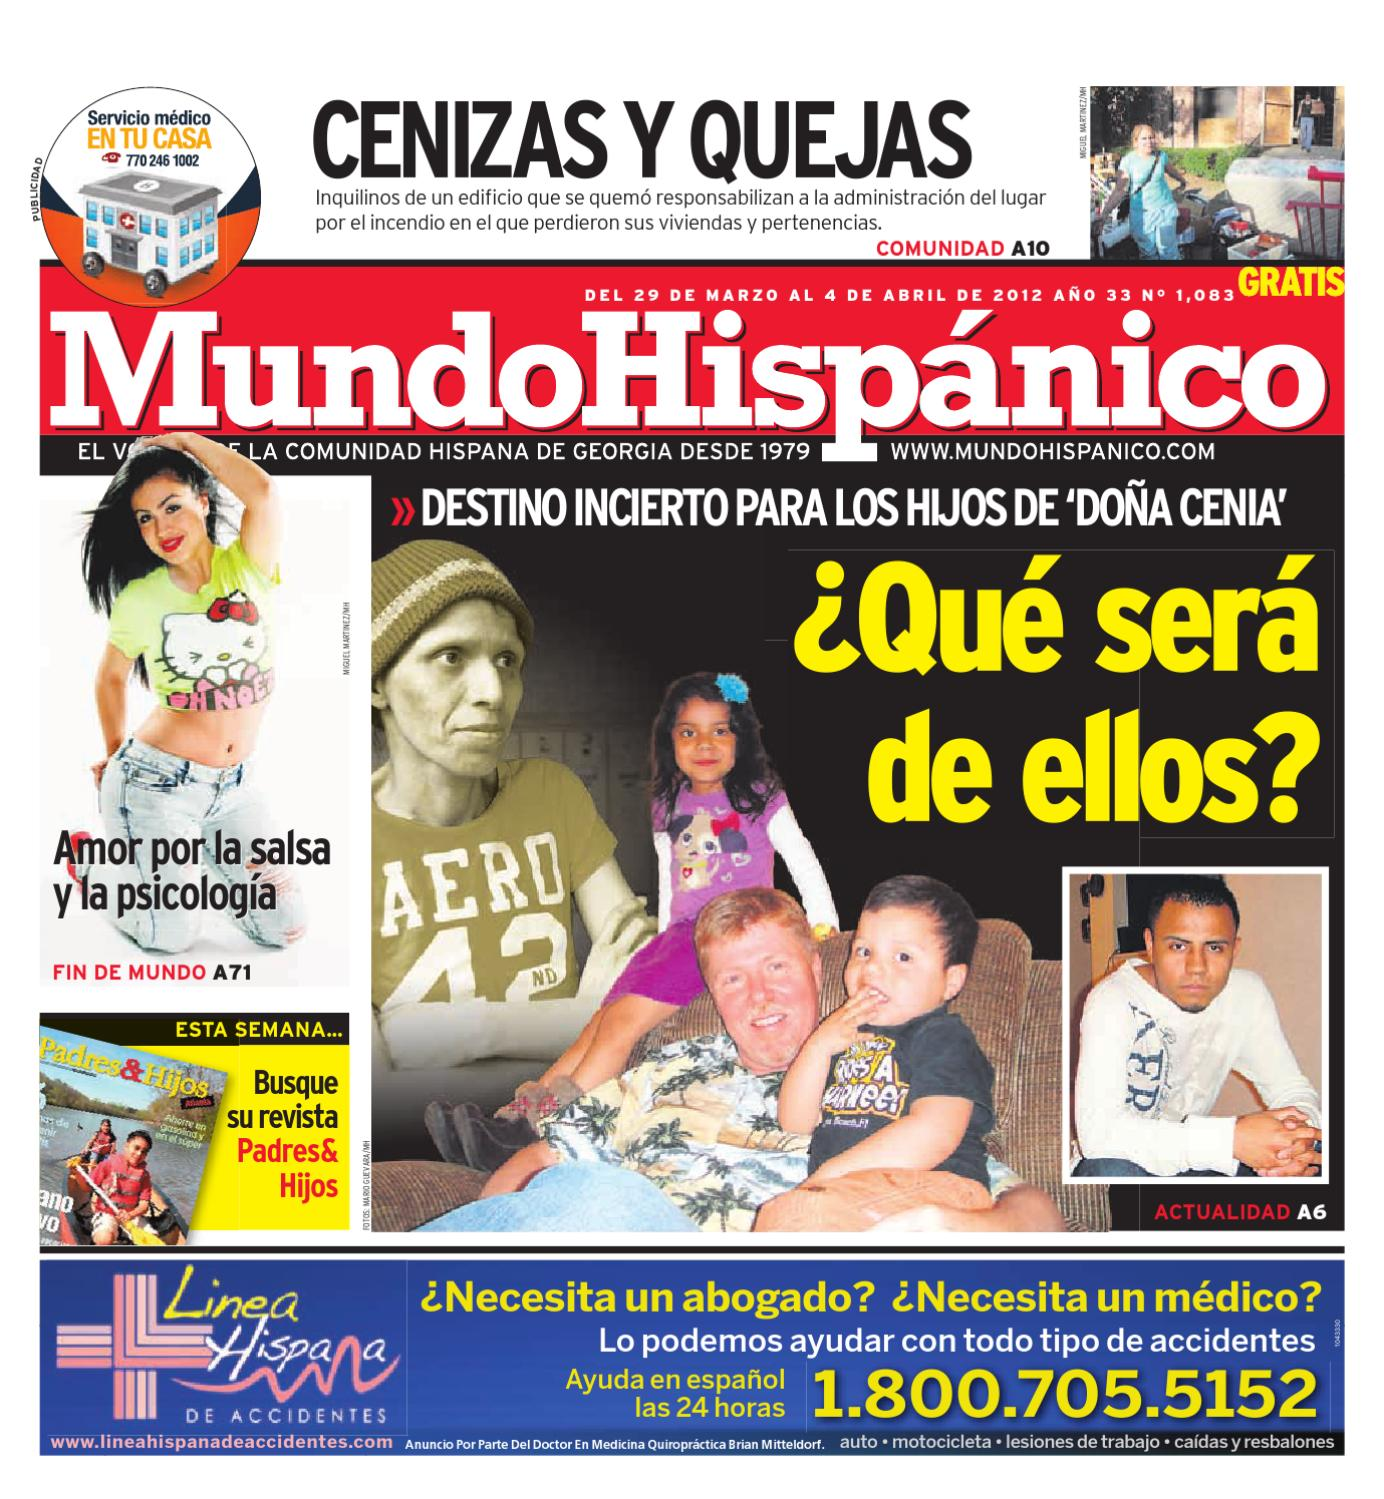 Mundo Hispanico 3-29-12 by MUNDO HISPANICO - issuu